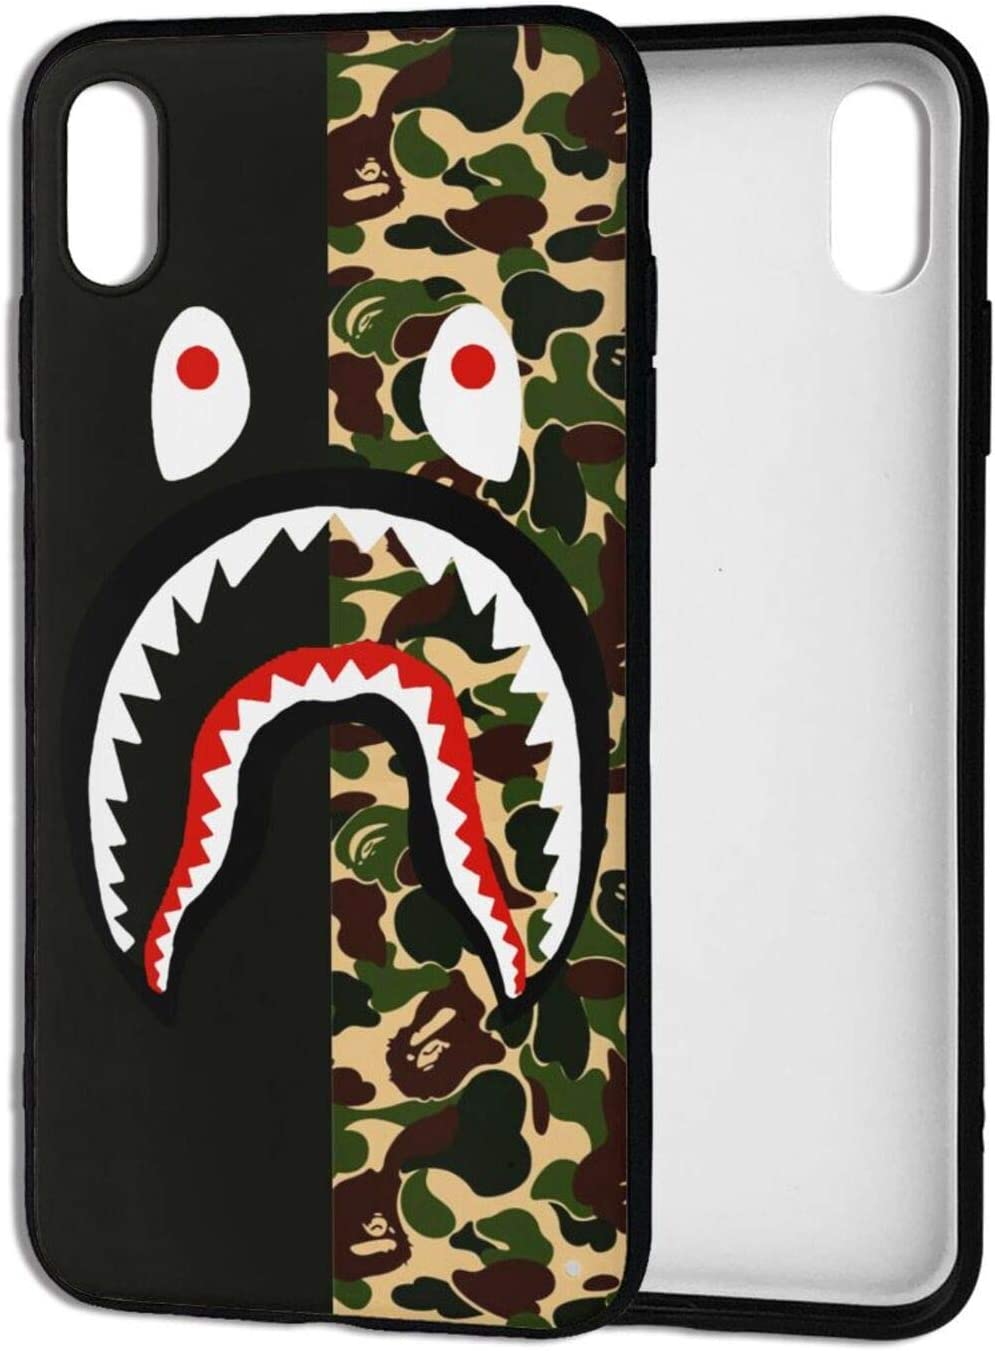 A-pe Ba_pe iPhone Xs Max Case, Street Fashion Design iPhone Xs Max Cases for Boys Girls Dual Layer Shockproof Cover Soft TPU Full-Body Cool Camo Case for iPhone Xs Max (6.5 Inch) - Camo-Shark